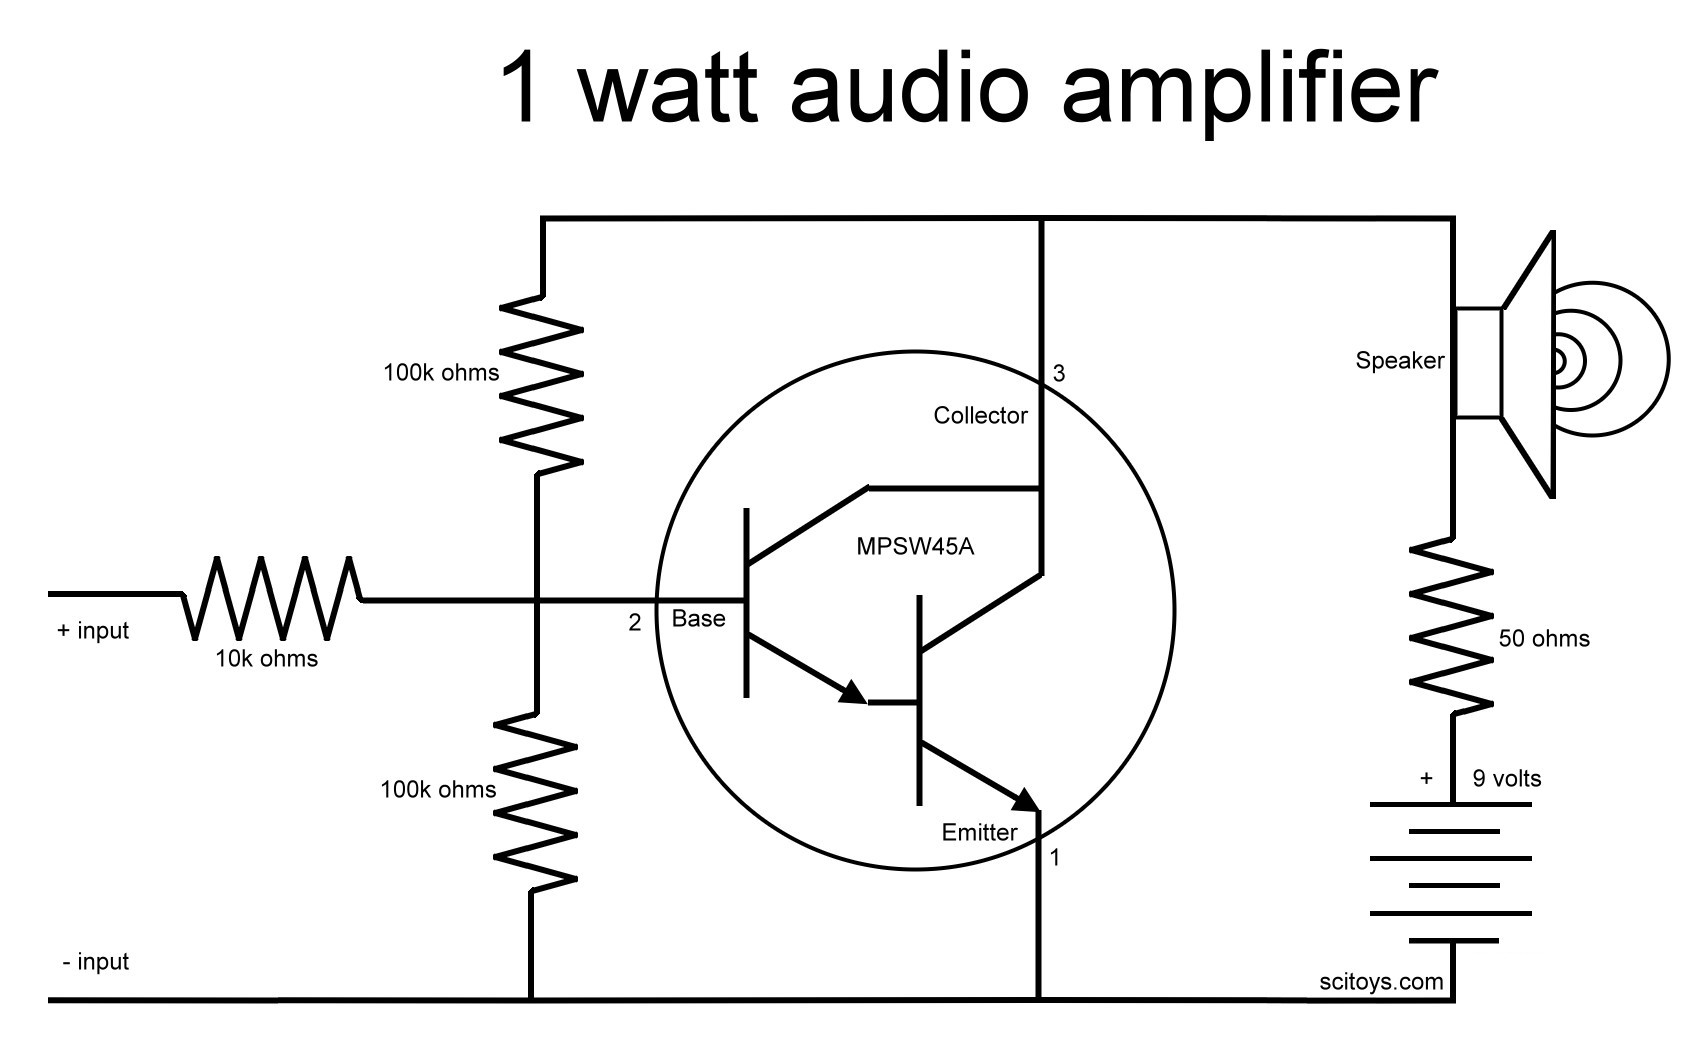 Chapter 10 Computers And Electronics Build A Simple 1 Watt Audio Kit Digital Thermometer With Pic16f84 Circuit How Does It Do That